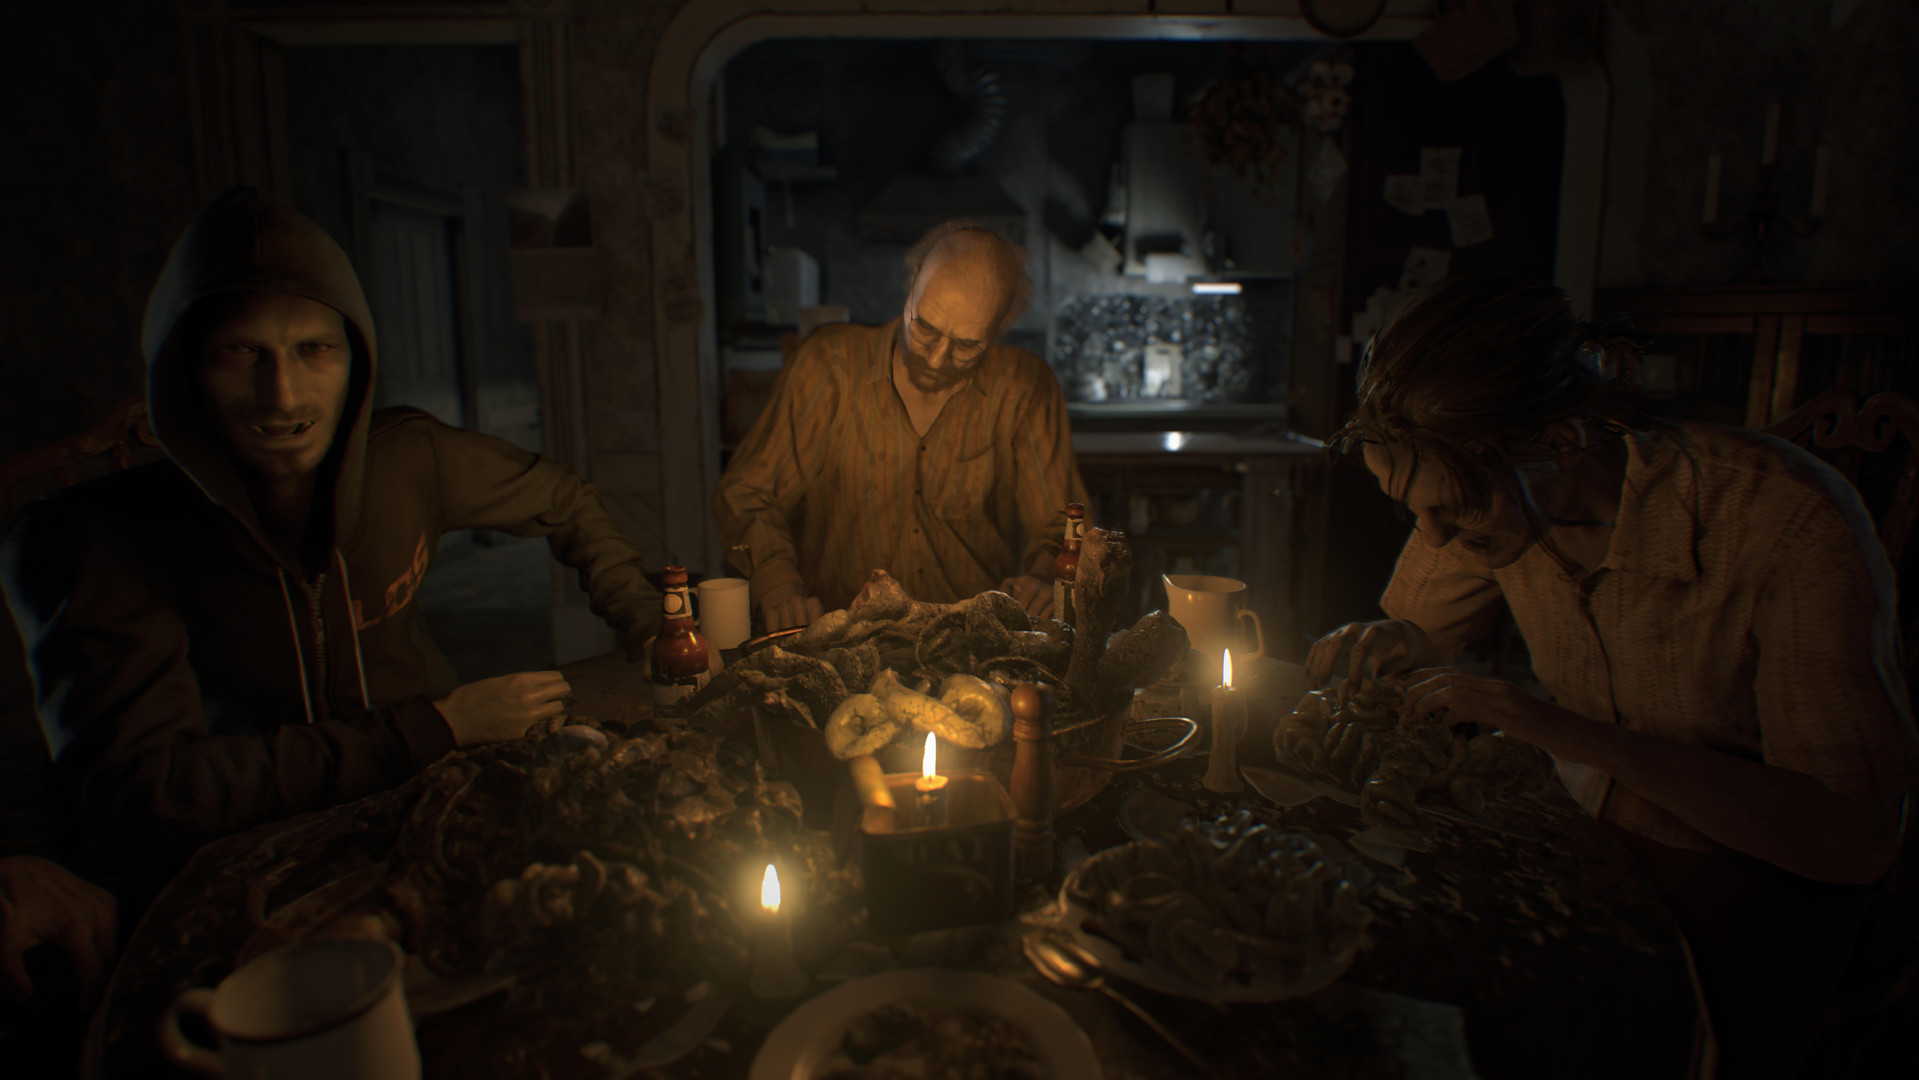 download resident evil 7 biohazard cpy release reloaded codex hi2u relover full version crack online addon updates latest version iso free for pc gratis 2017